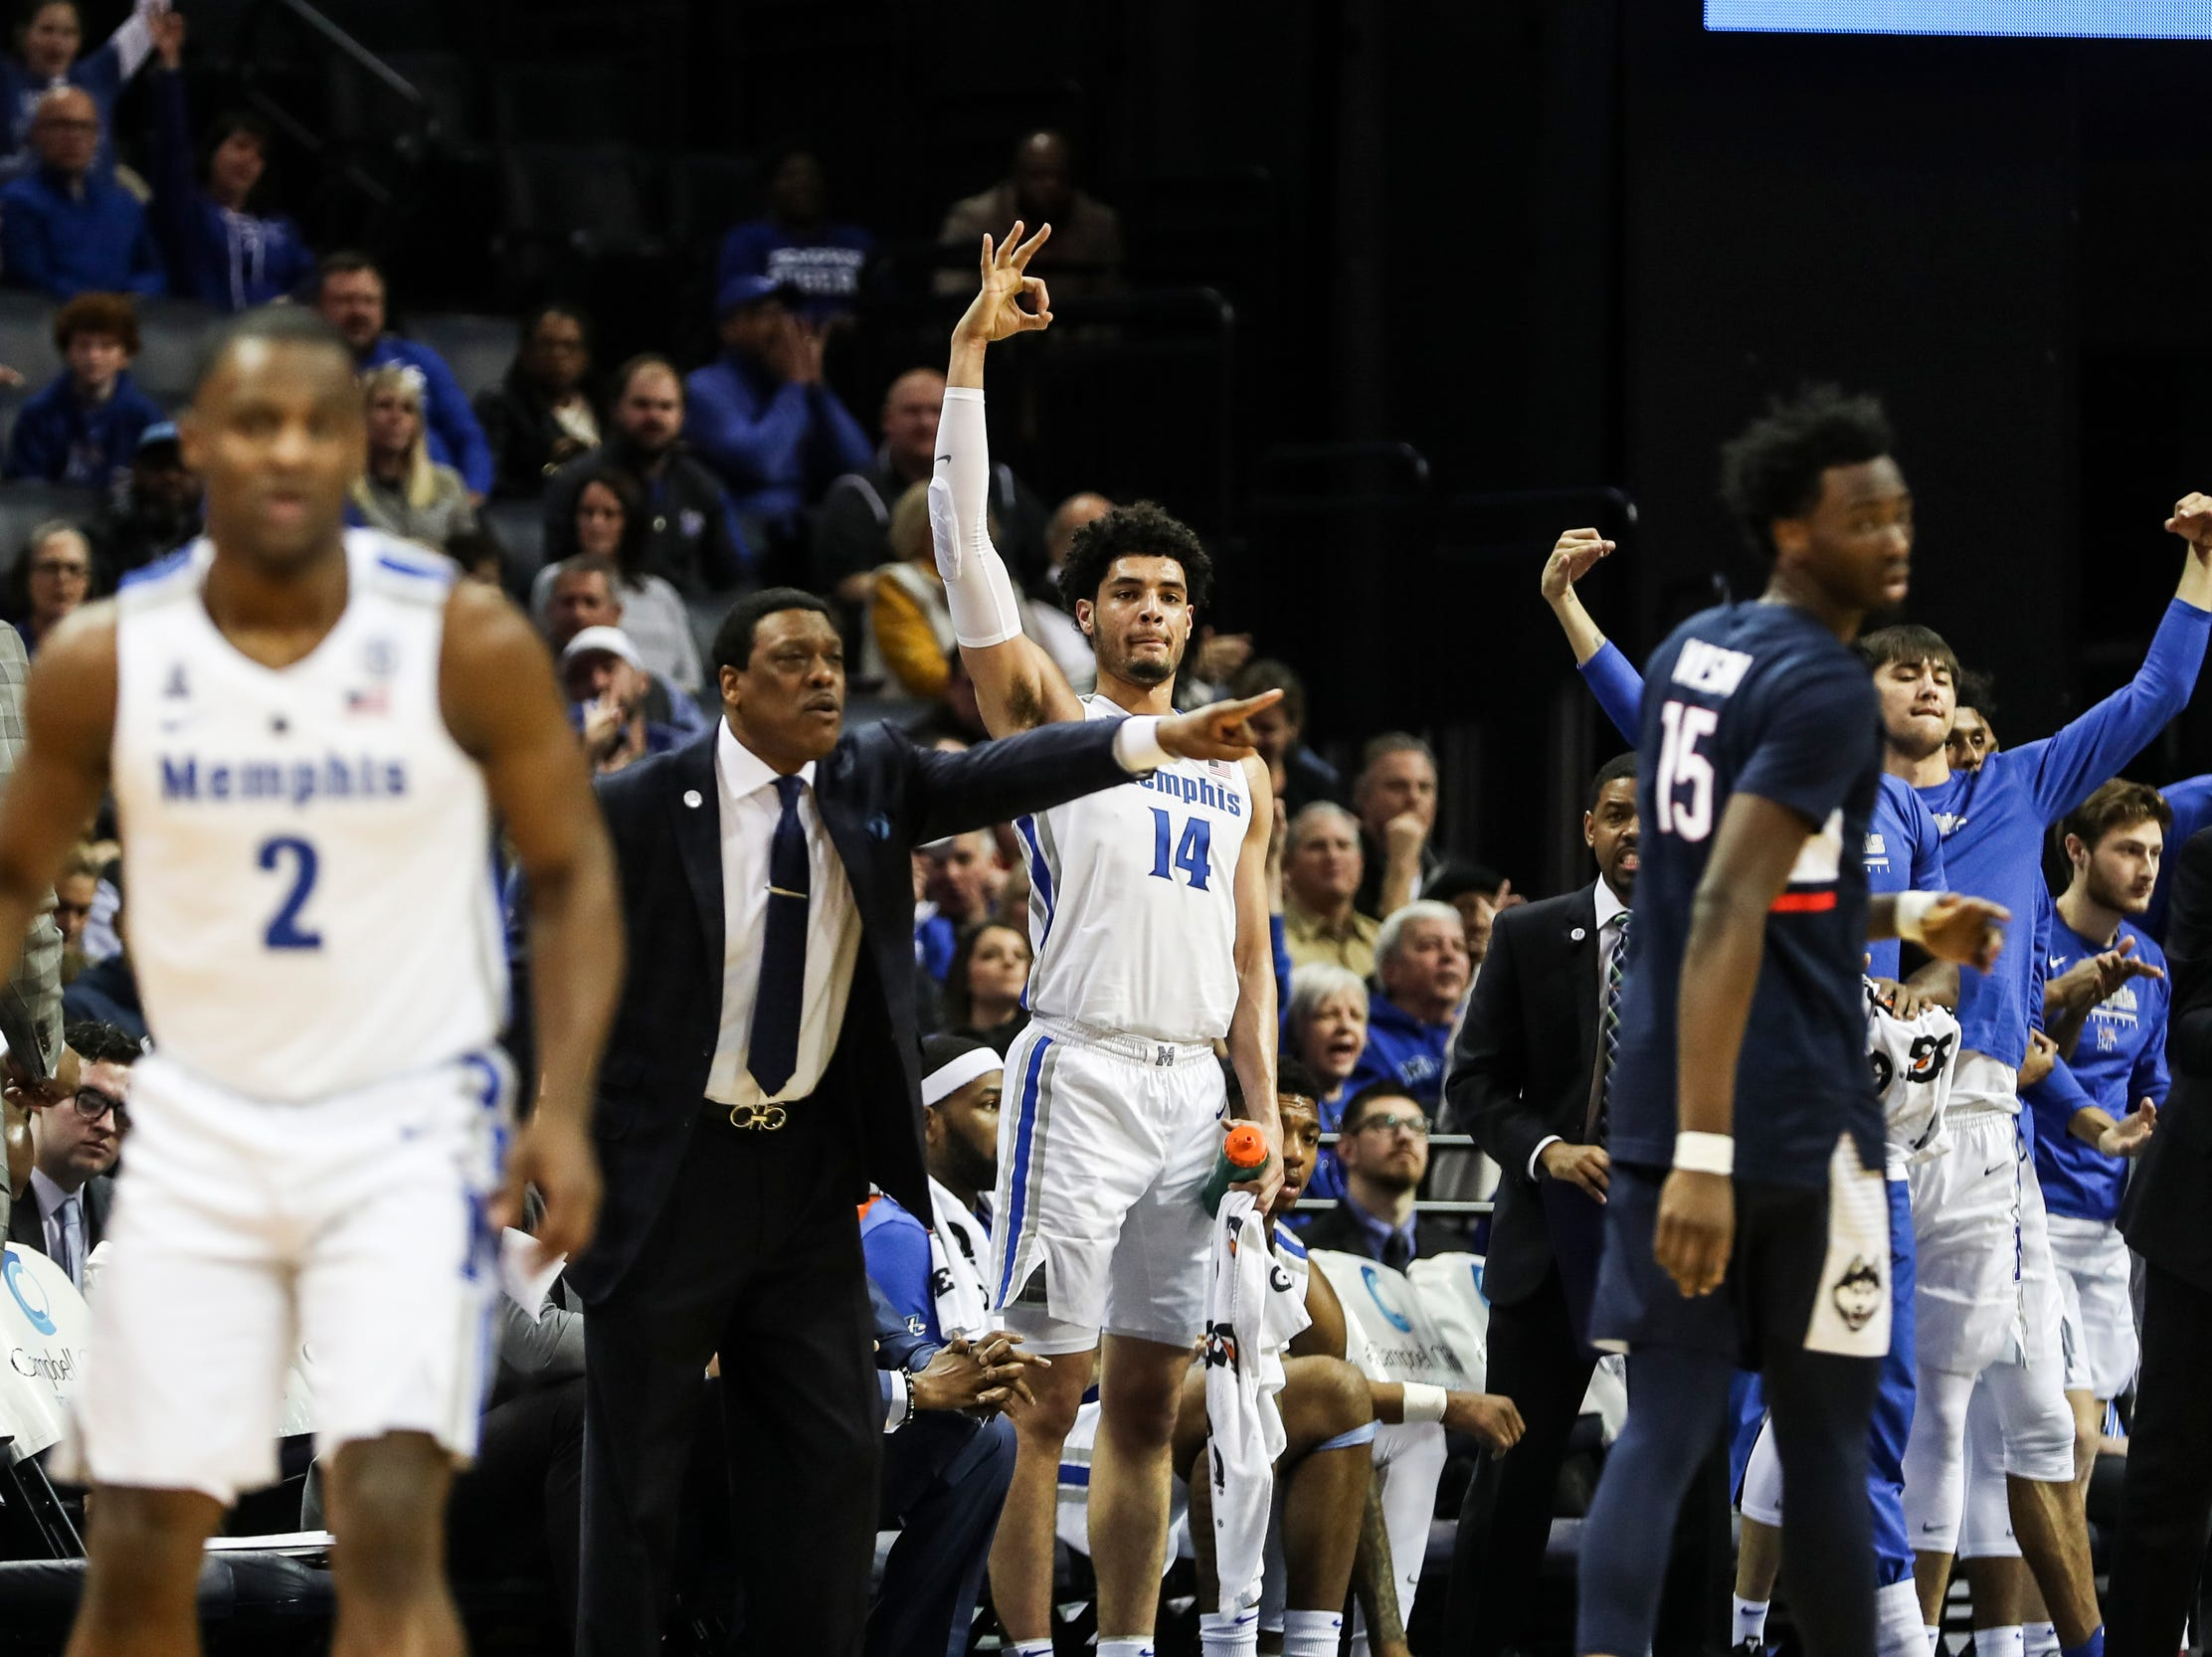 February 10, 2019 - Memphis players react during Sunday's game versus Connecticut at the FedExForum.